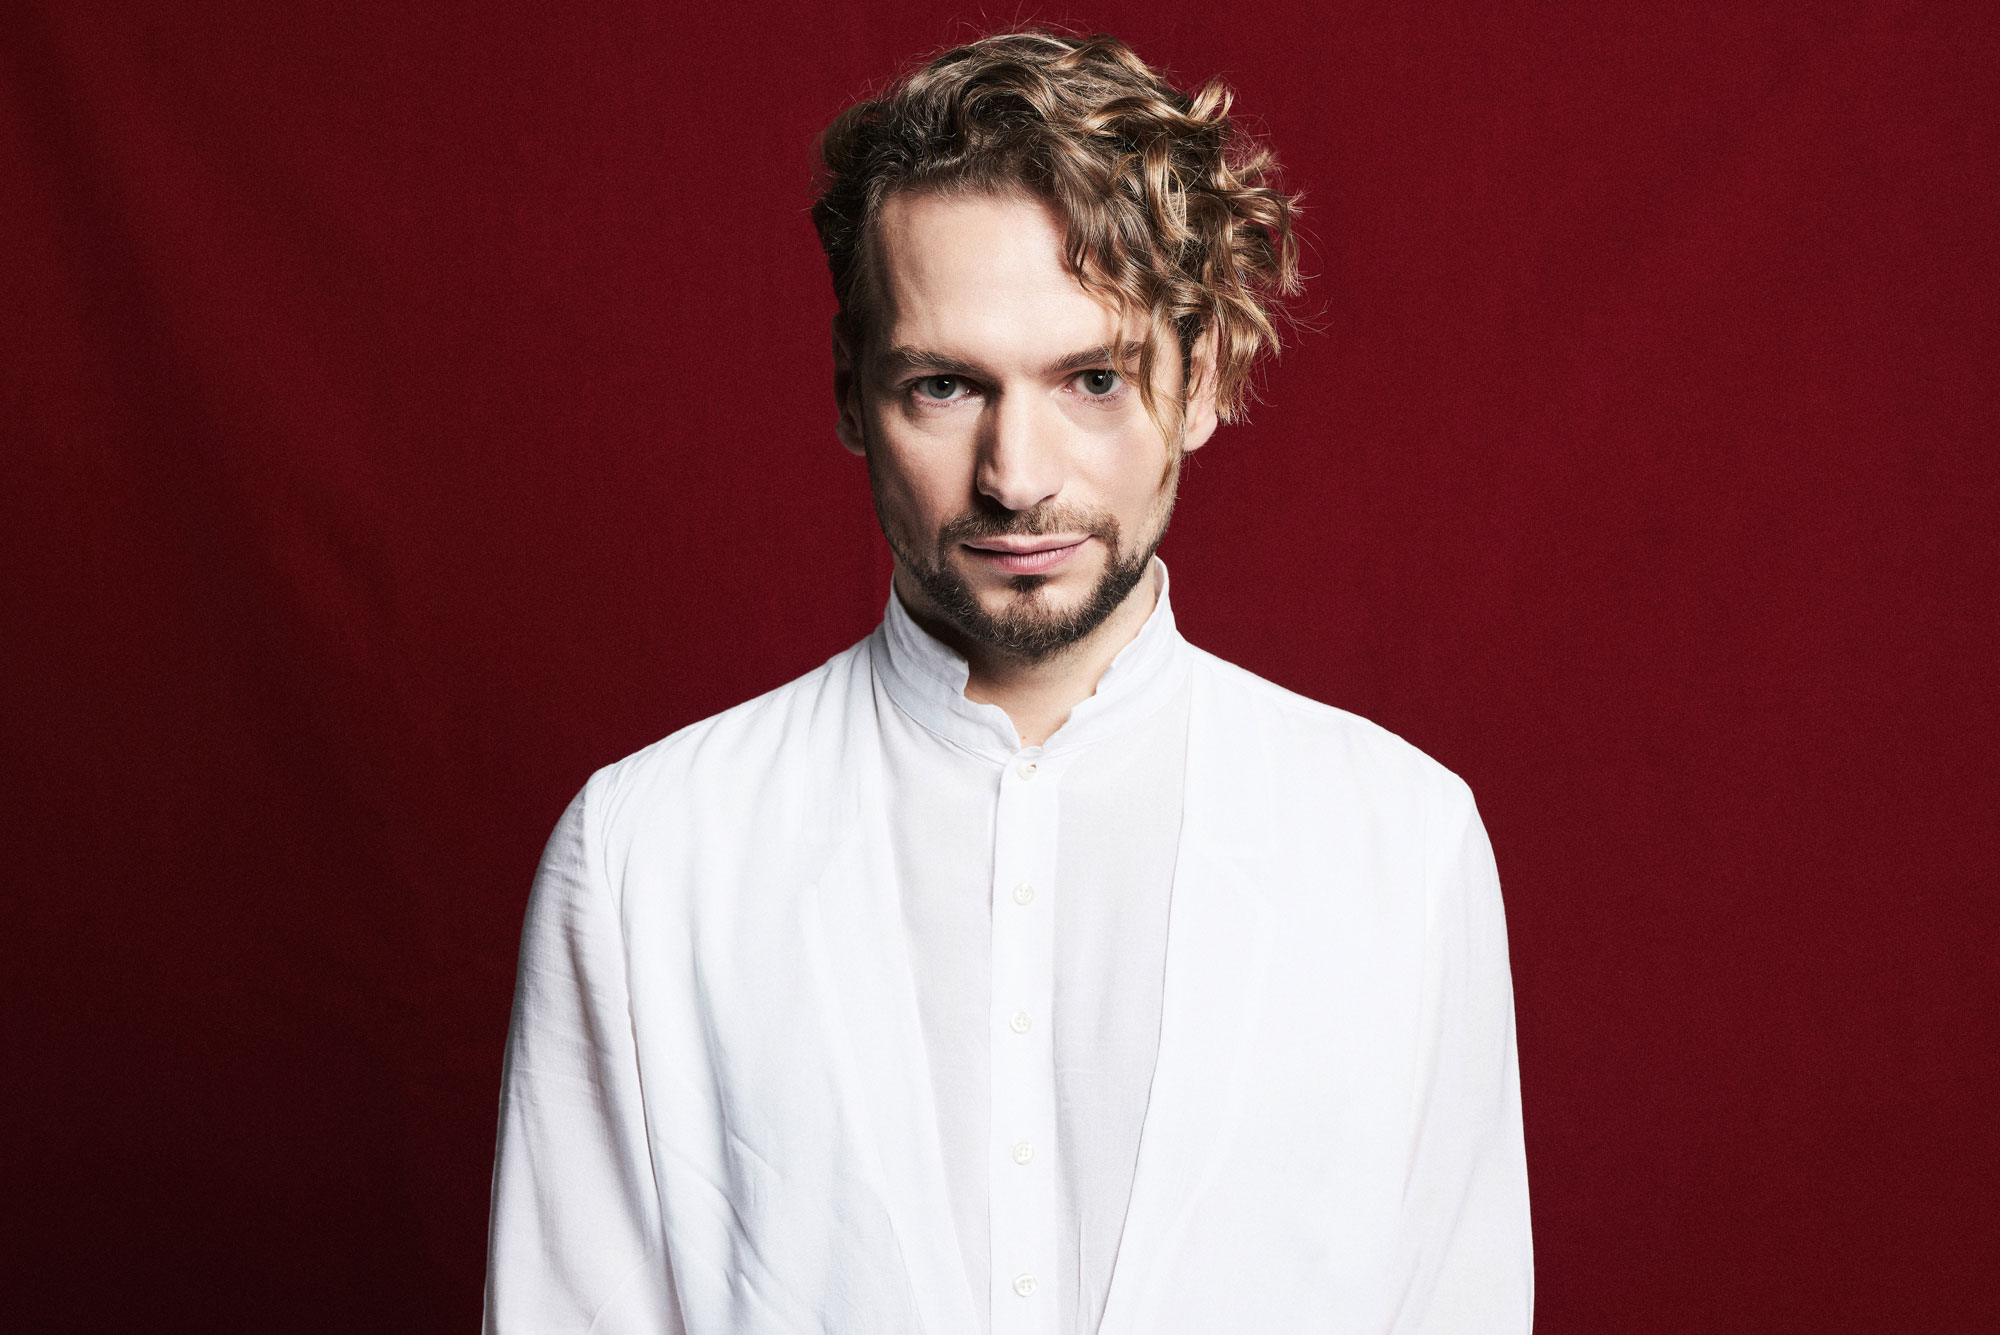 Portrait photo of singer Felix Räuber in white clothes against a red background